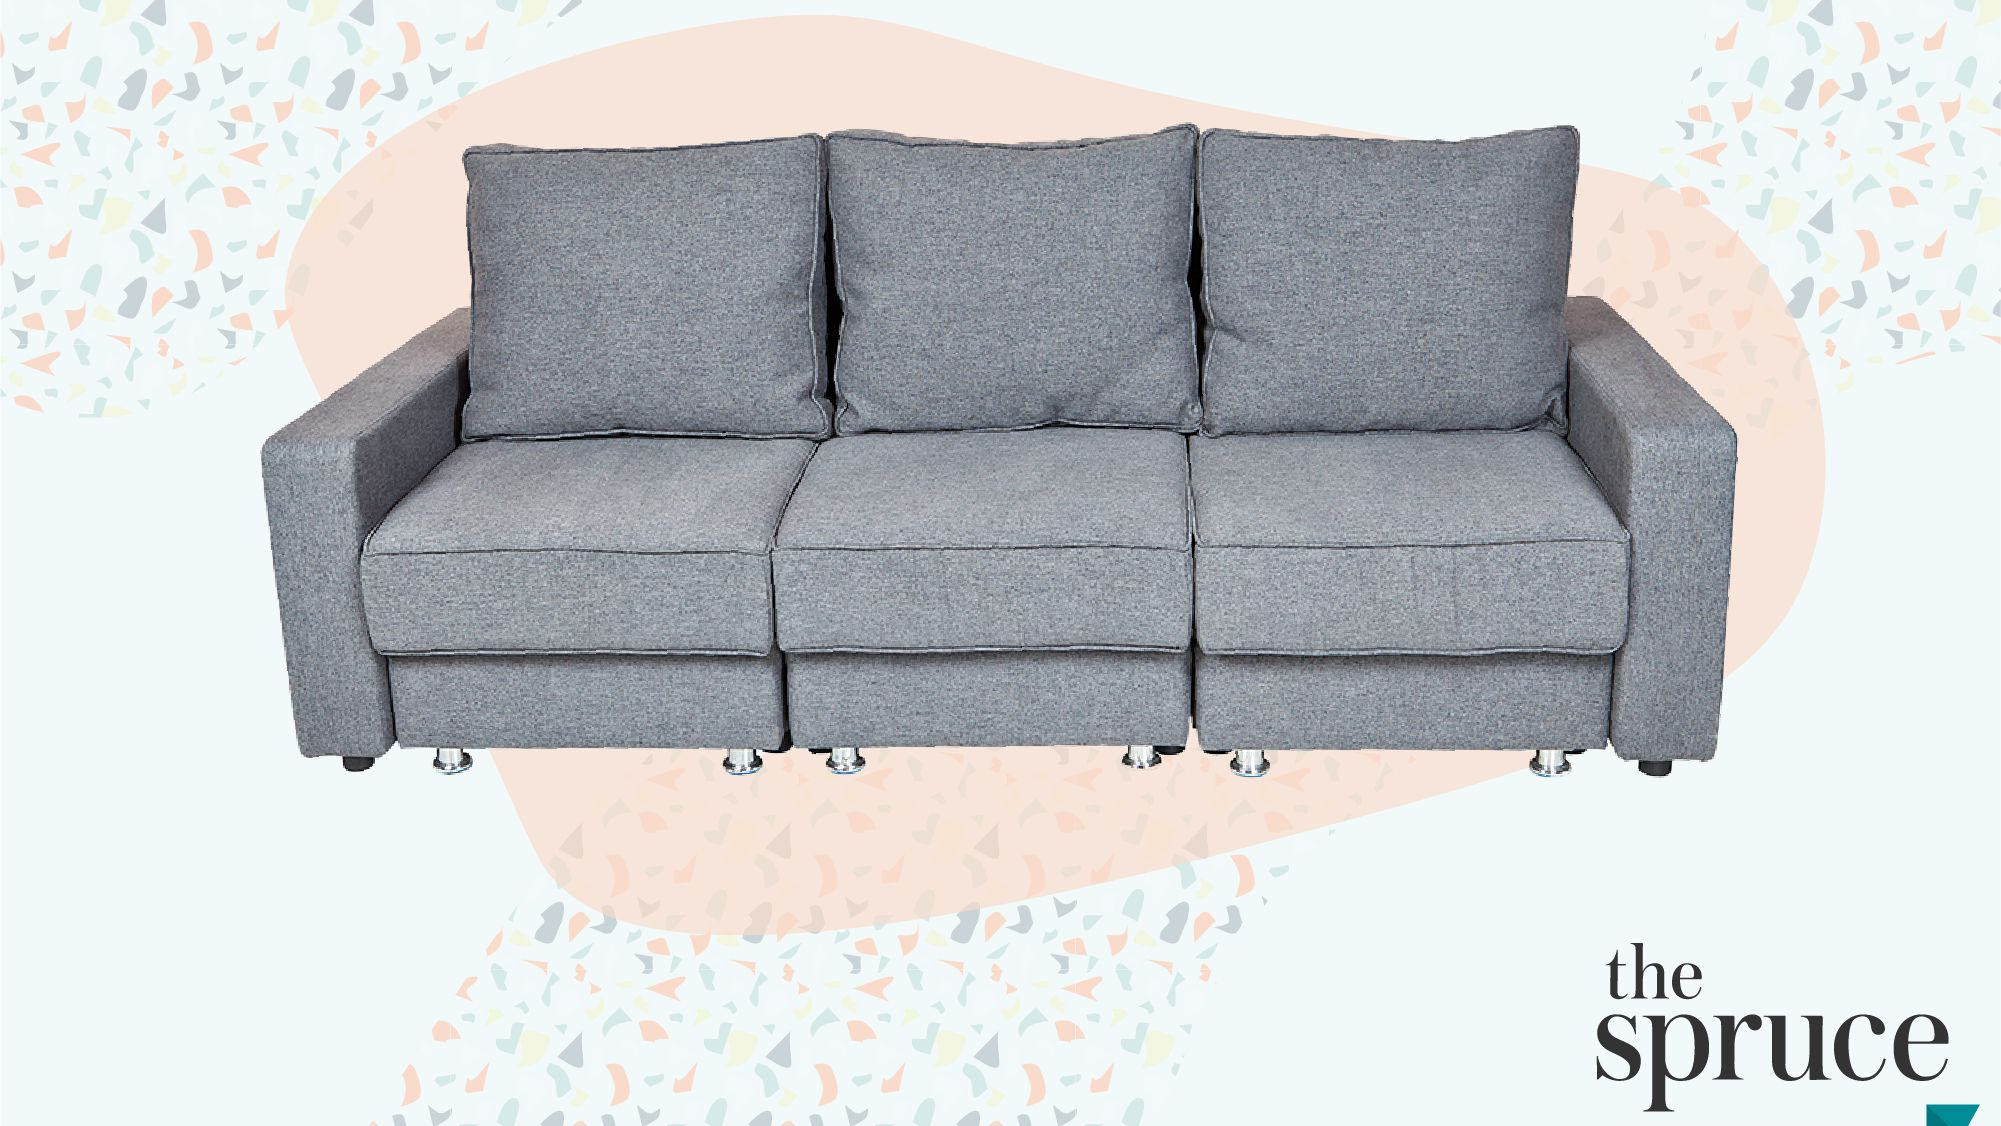 The 13 Best Places to Buy a Couch in 2021